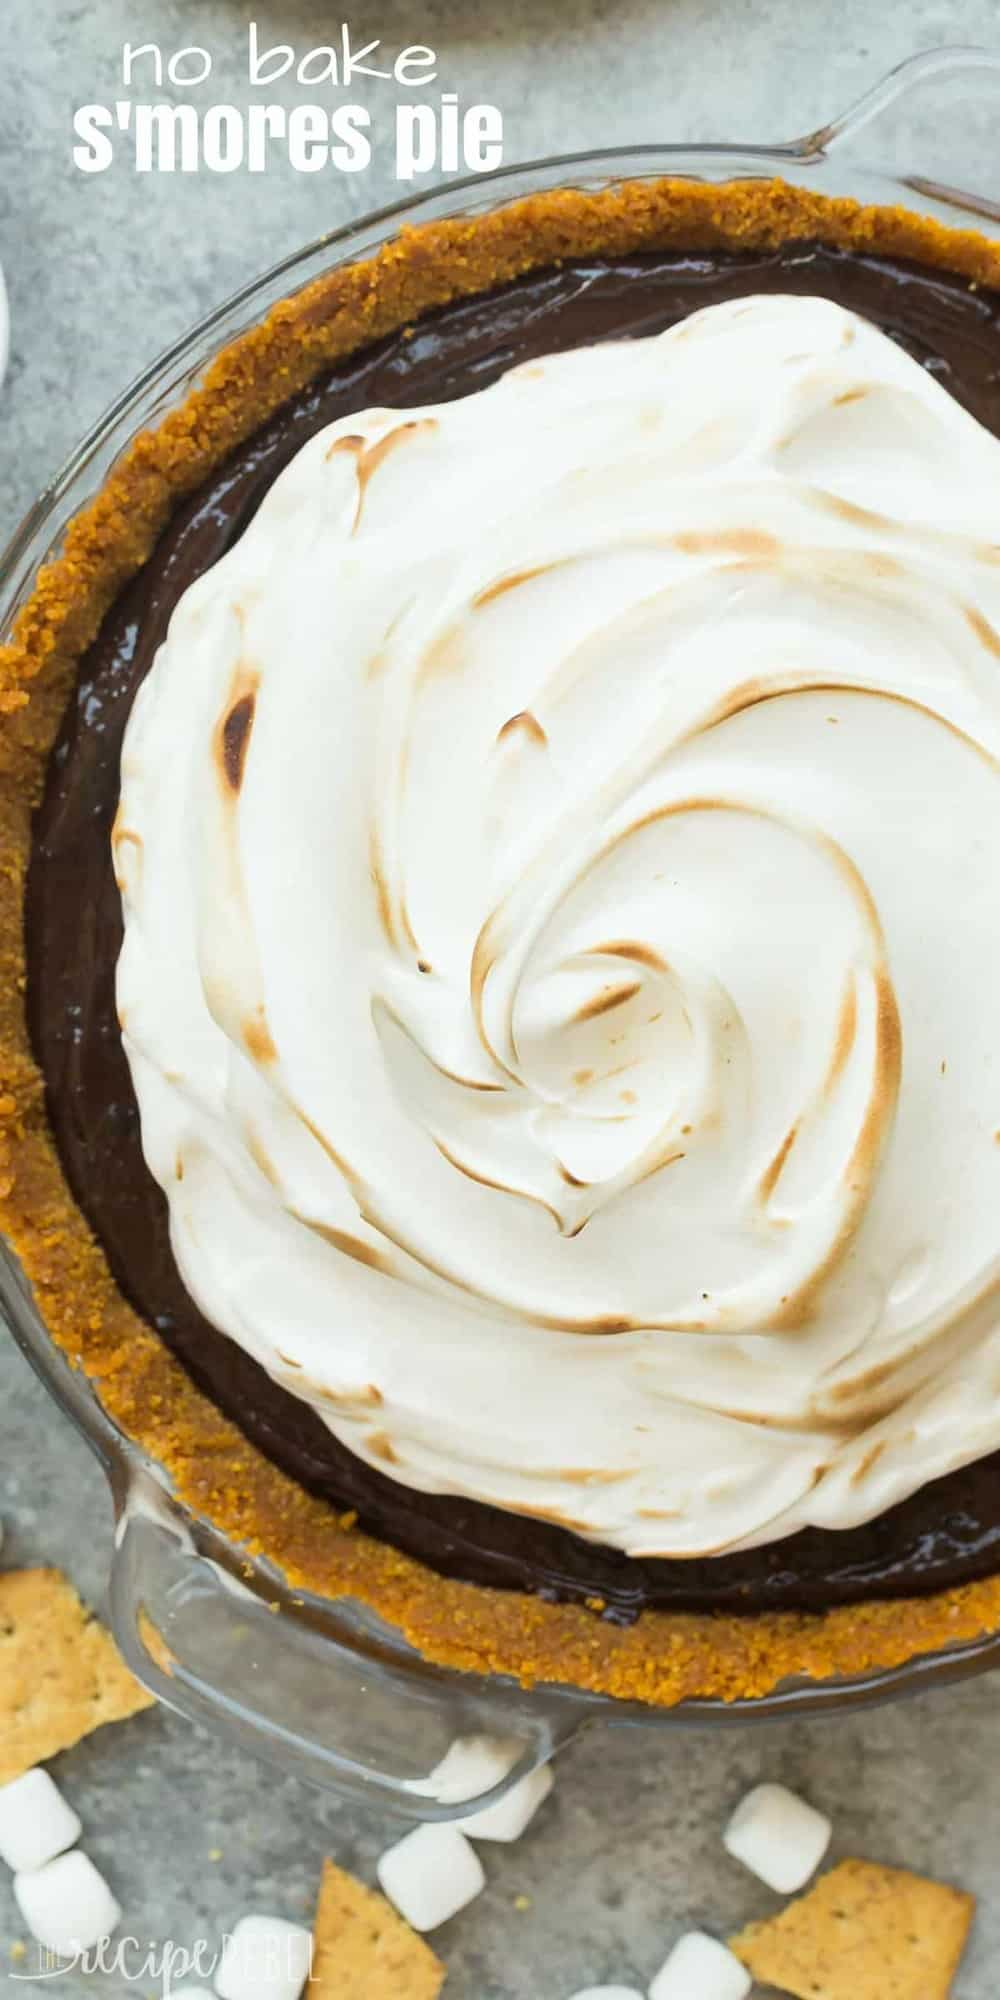 This No Bake S'mores Pie is an easy no bake dessert made with a chocolate pudding filling, no bake graham crust and loaded with homemade marshmallow cream! | summer dessert | chocolate pudding pie | easy dessert | easy recipe | pie recipe | chocolate dessert | homemade marshmallow